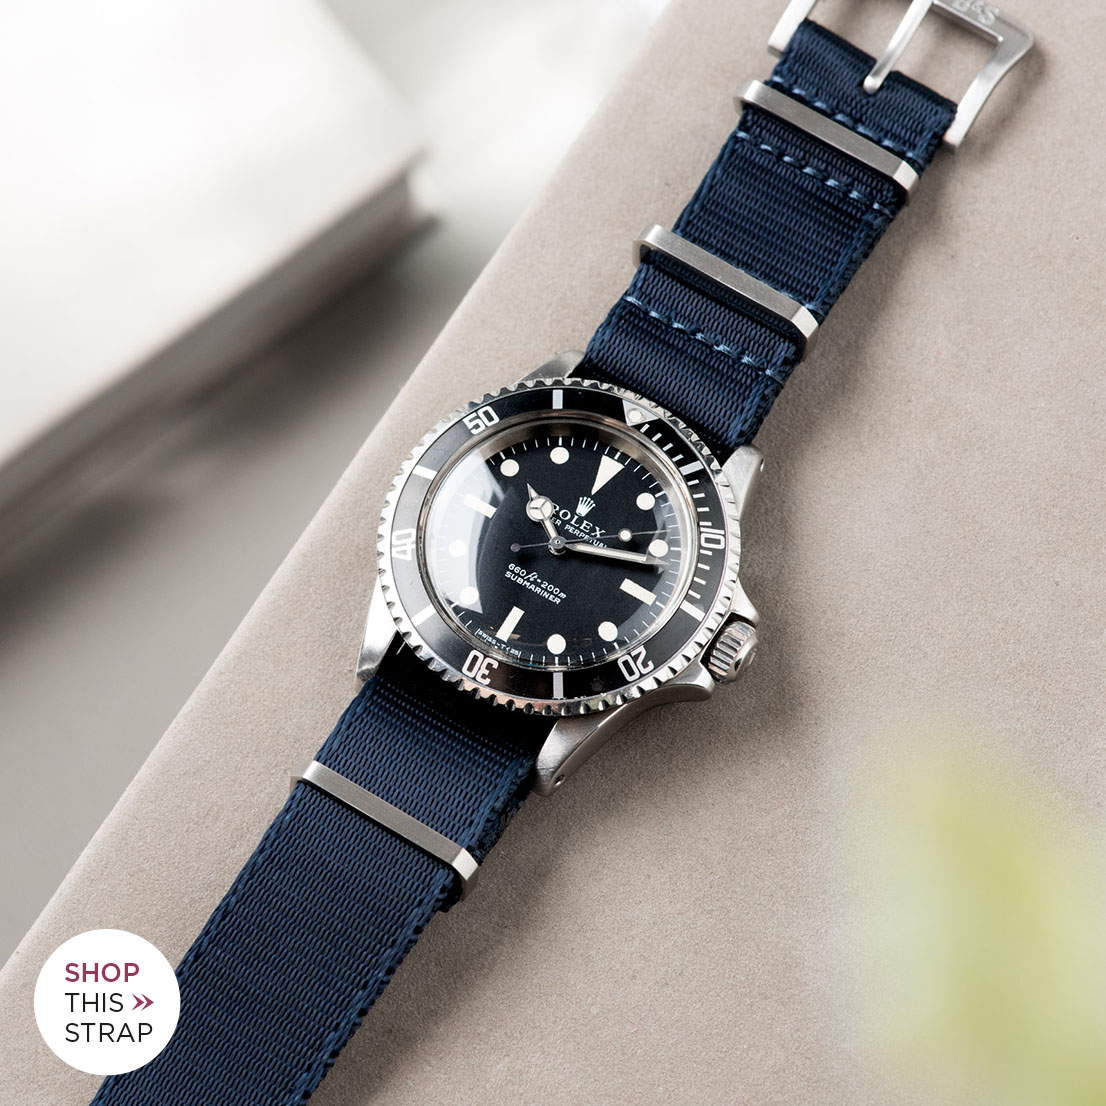 Bulang and Sons_Strap Guide_Rolex 5513 Submariner_DELUXE NYLON NATO WATCH STRAP NAVY BLUE